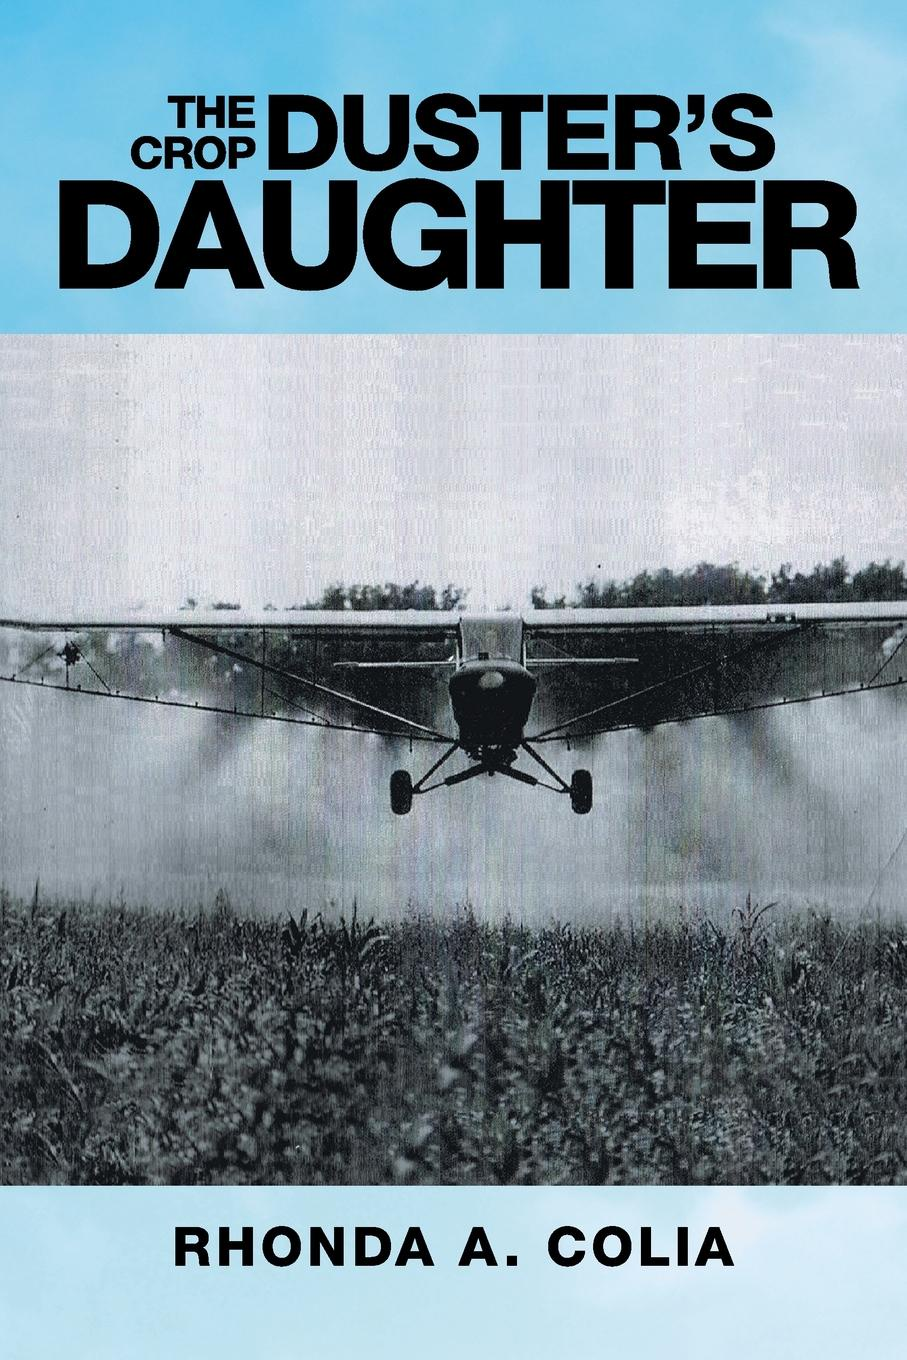 Rhonda A. Colia The Crop Duster's Daughter burger s daughter